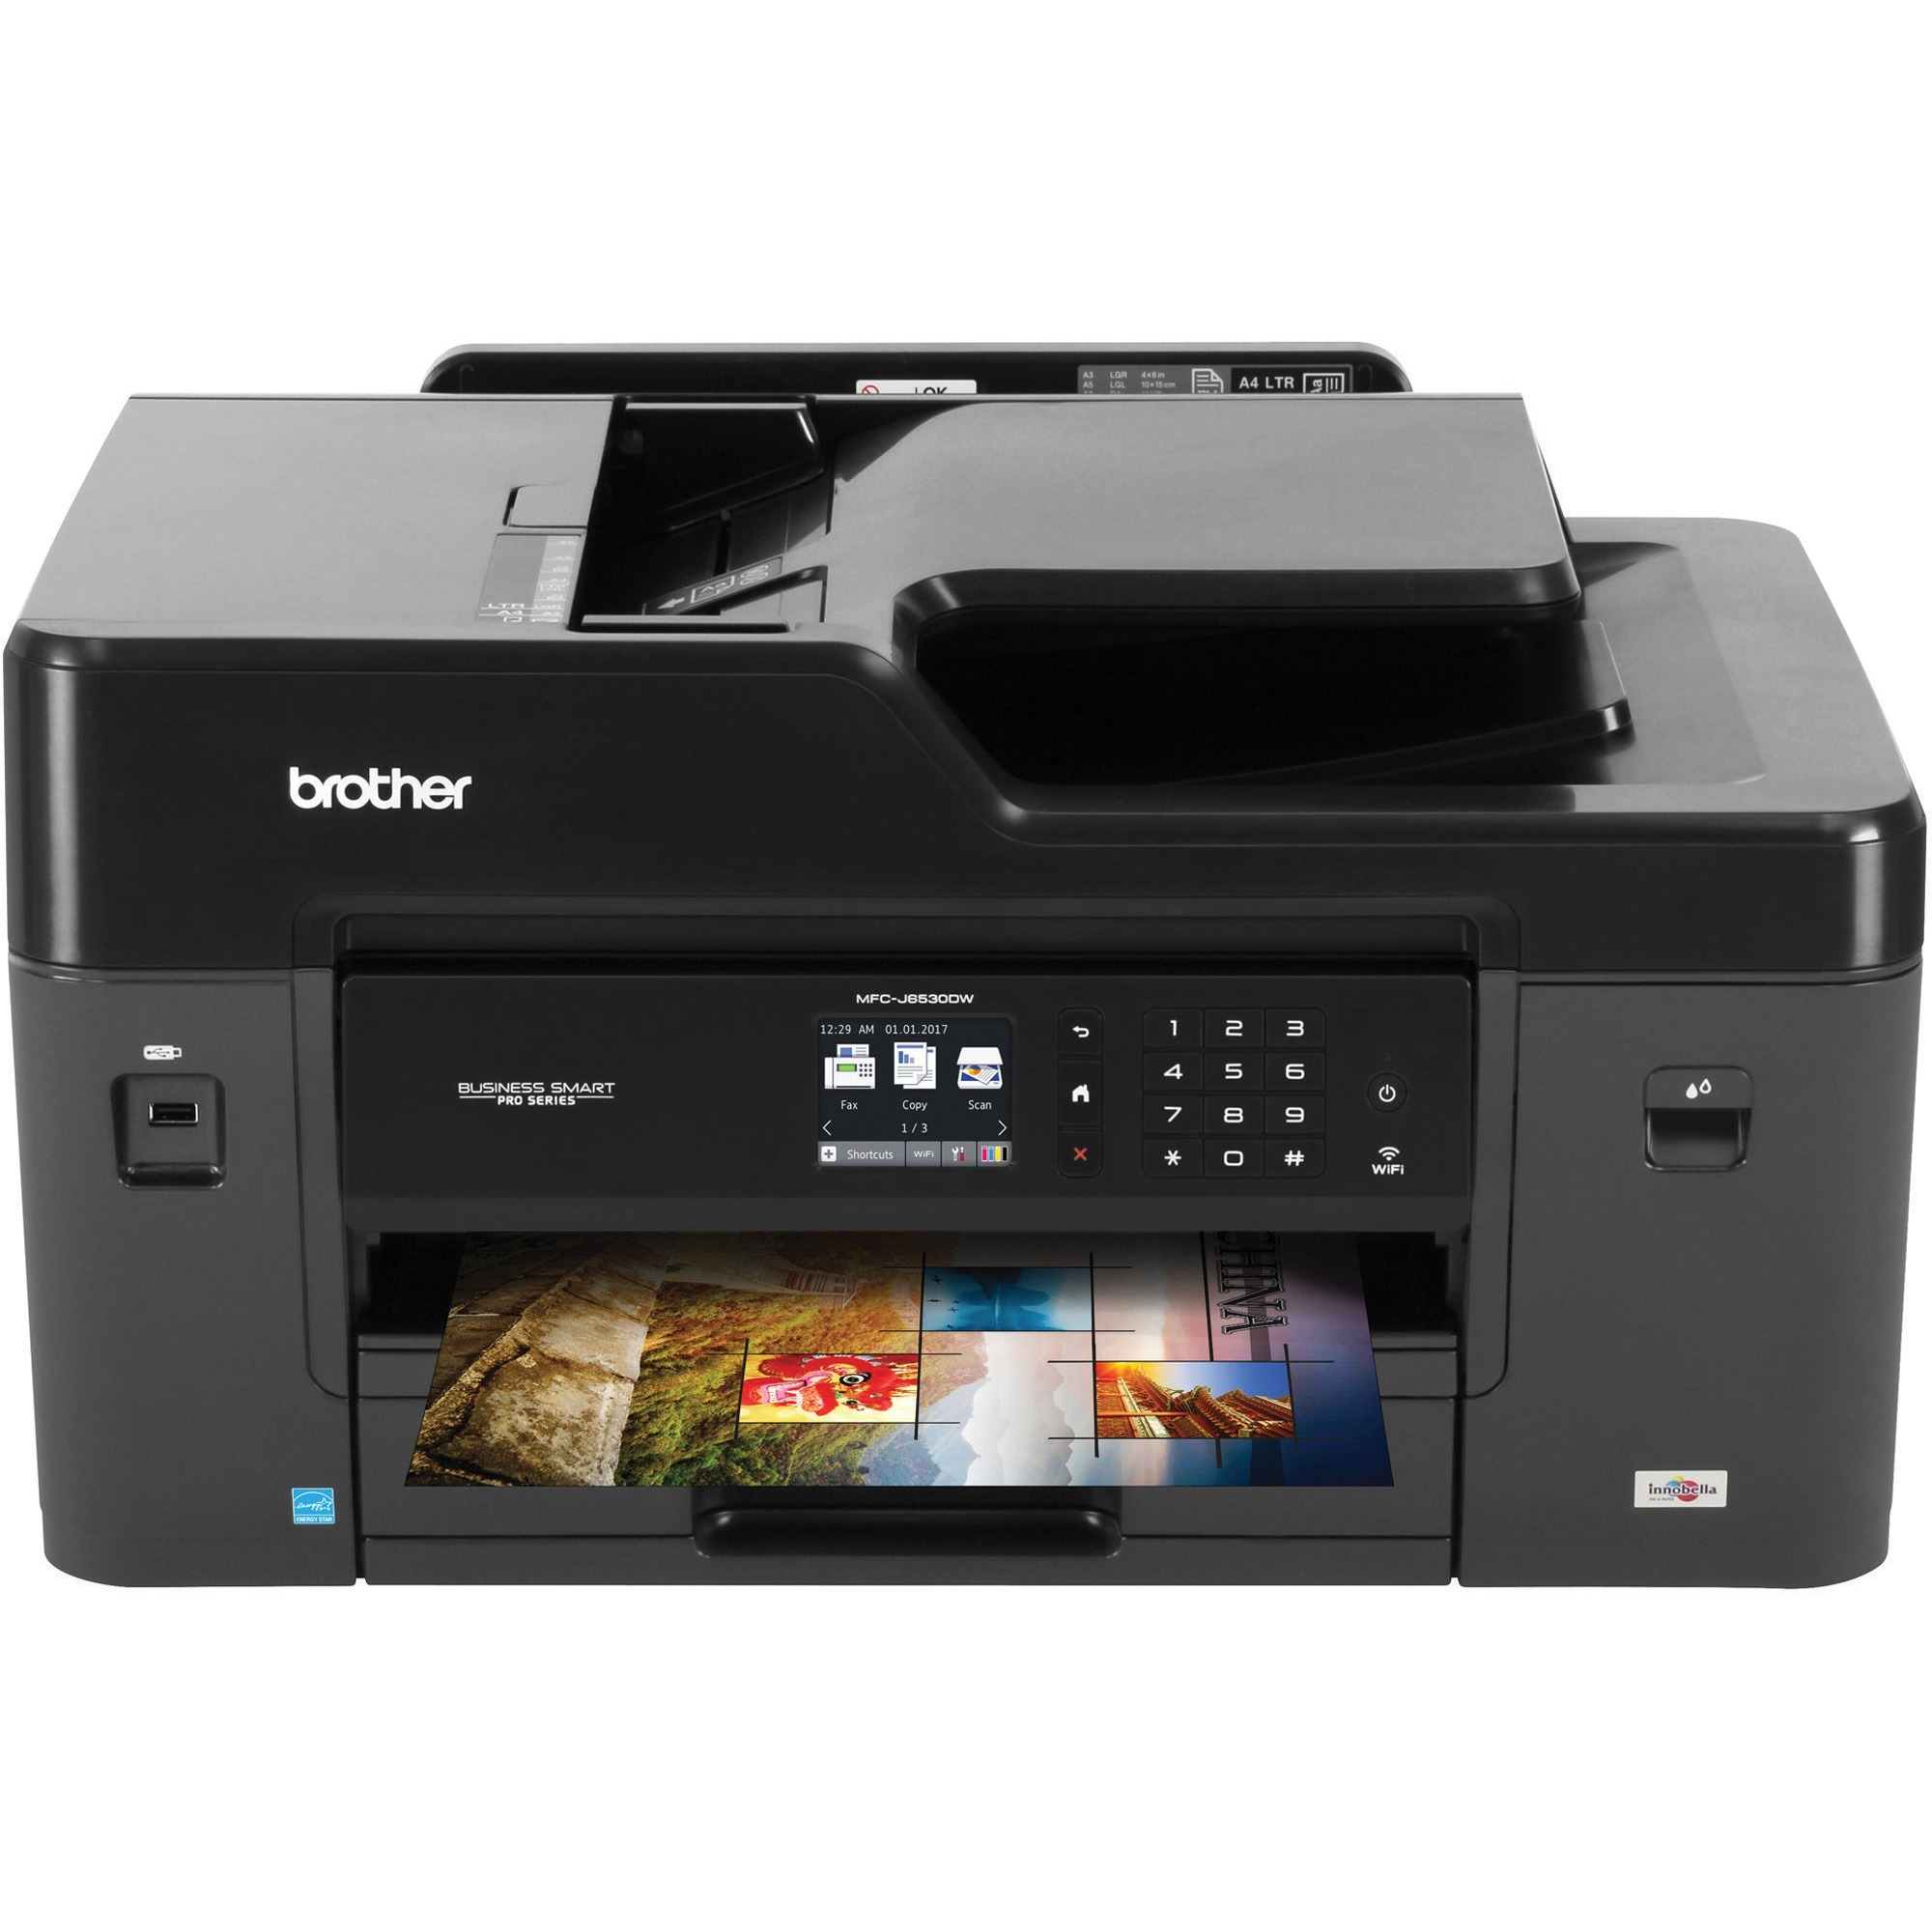 Brother Business Smart Pro Mfc J6530dw Color All In One Copy Fax